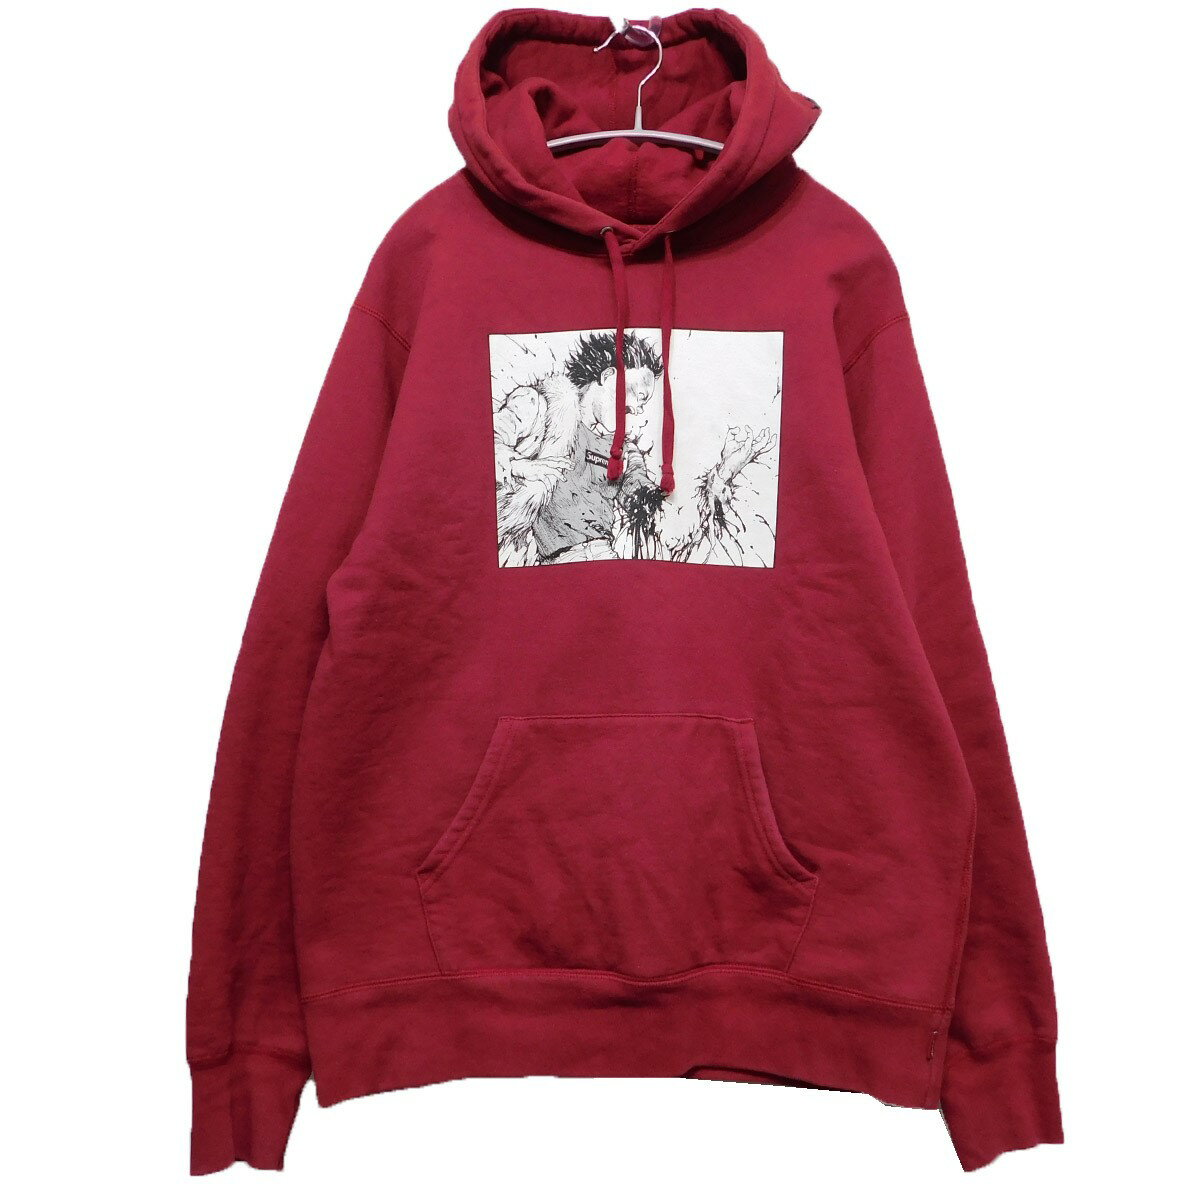 トップス, パーカー SUPREMEAKIRA 2017AW Arm Hooded Sweatshirt M 100120